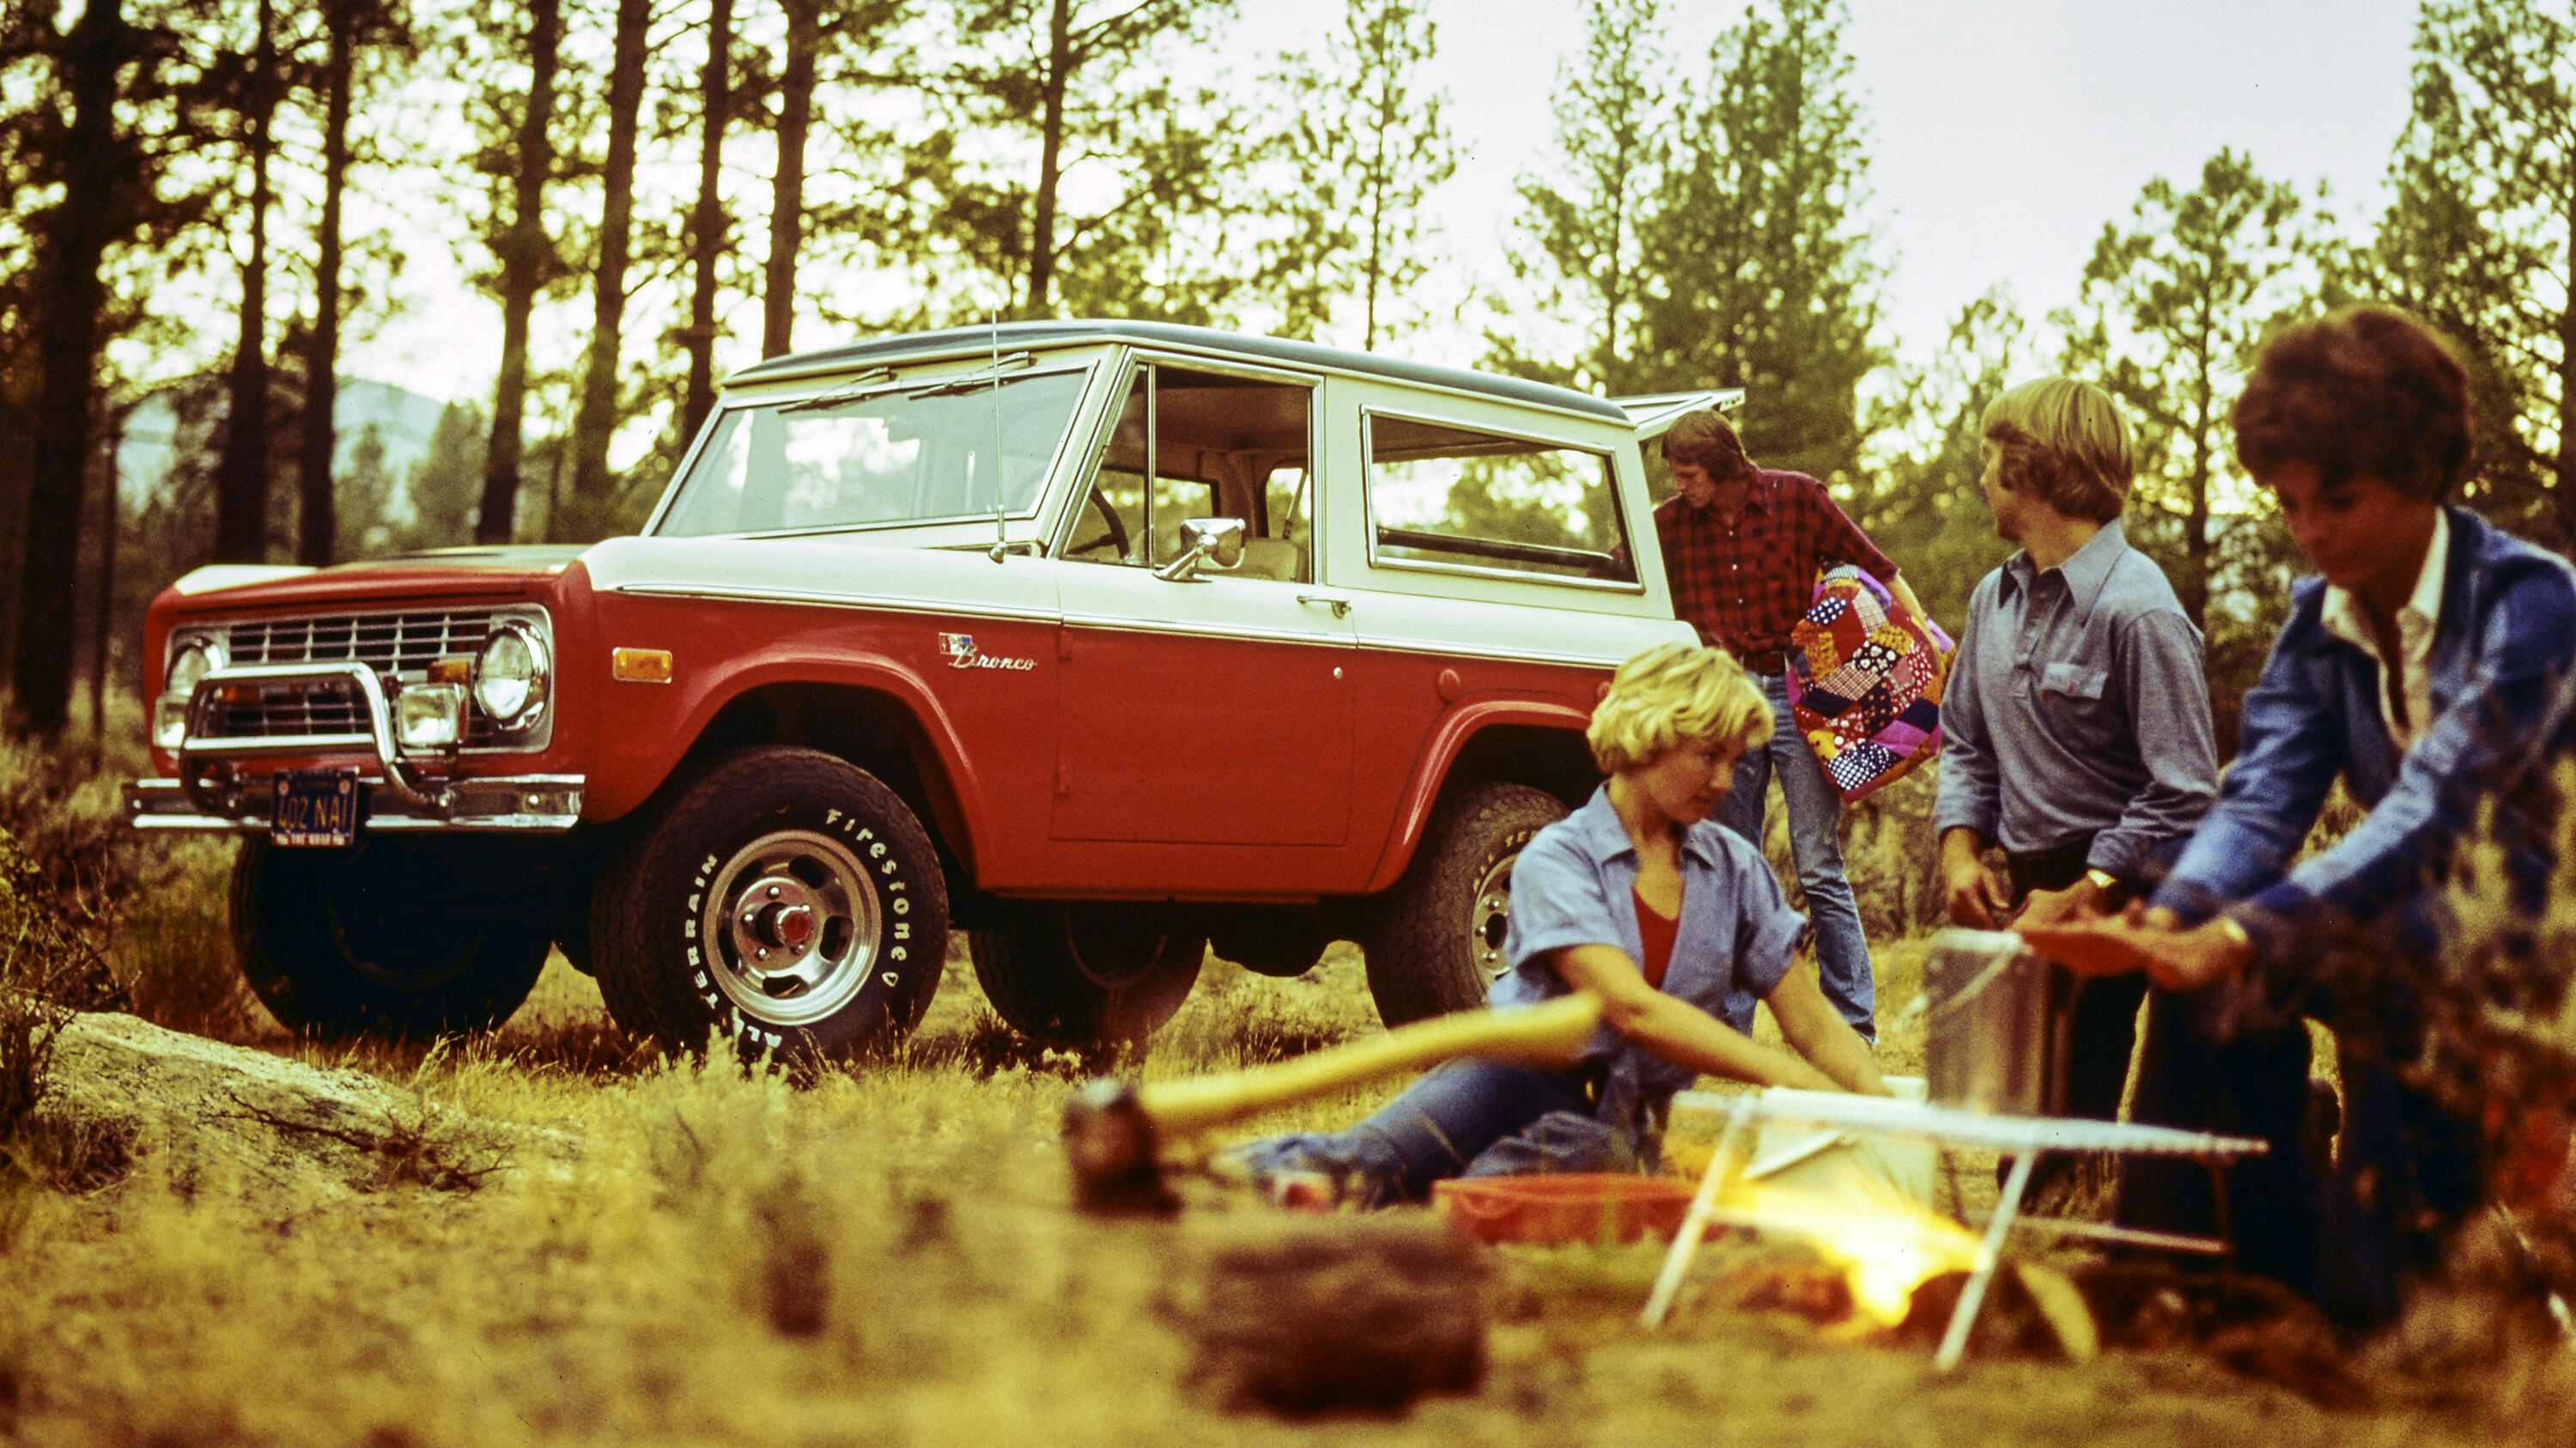 1976 Ford Bronco with campfire family